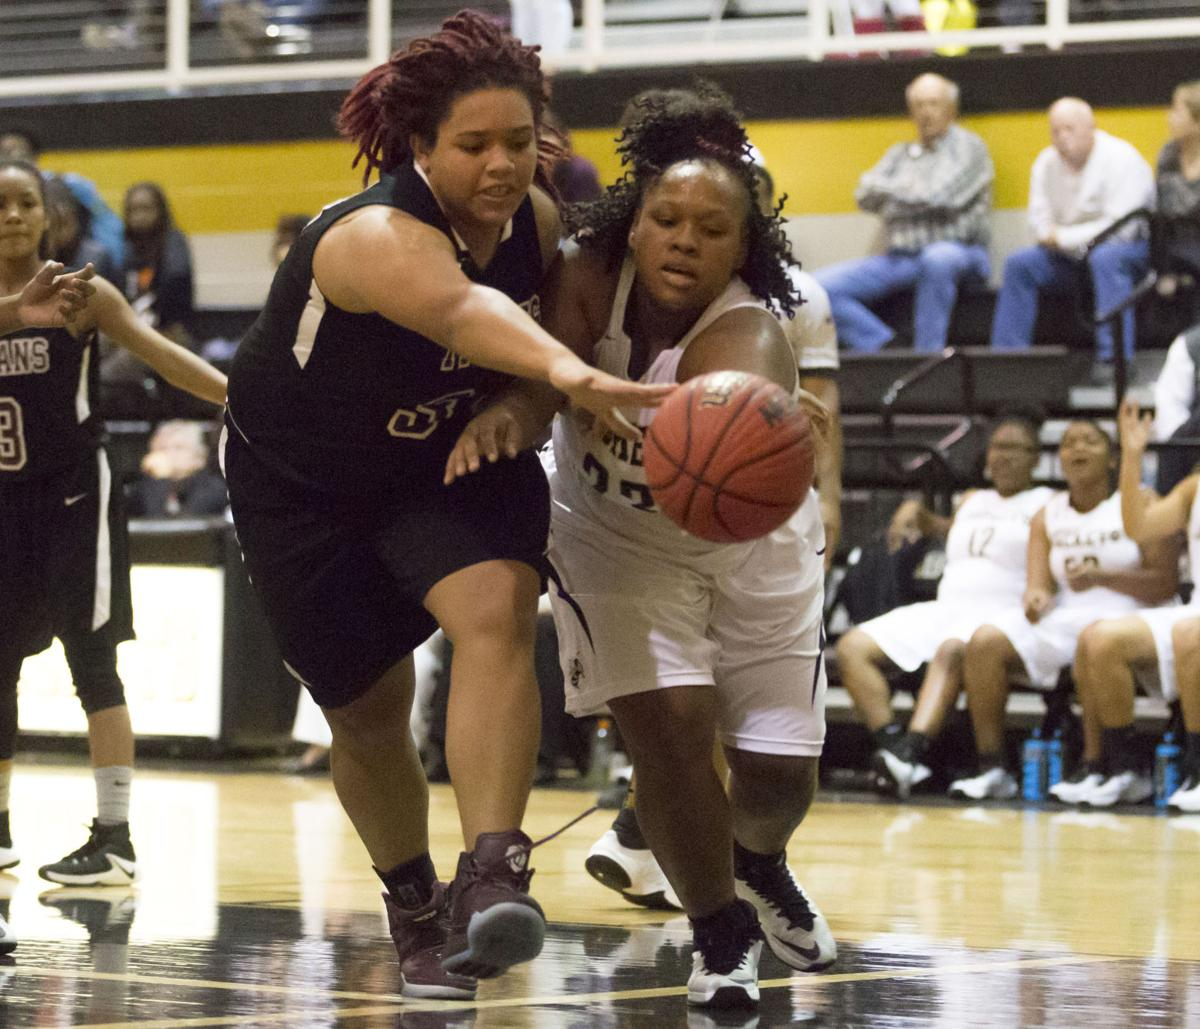 gadsden girls View the schedule, scores, league standings and articles for the gadsden  panthers girls basketball team on maxpreps.